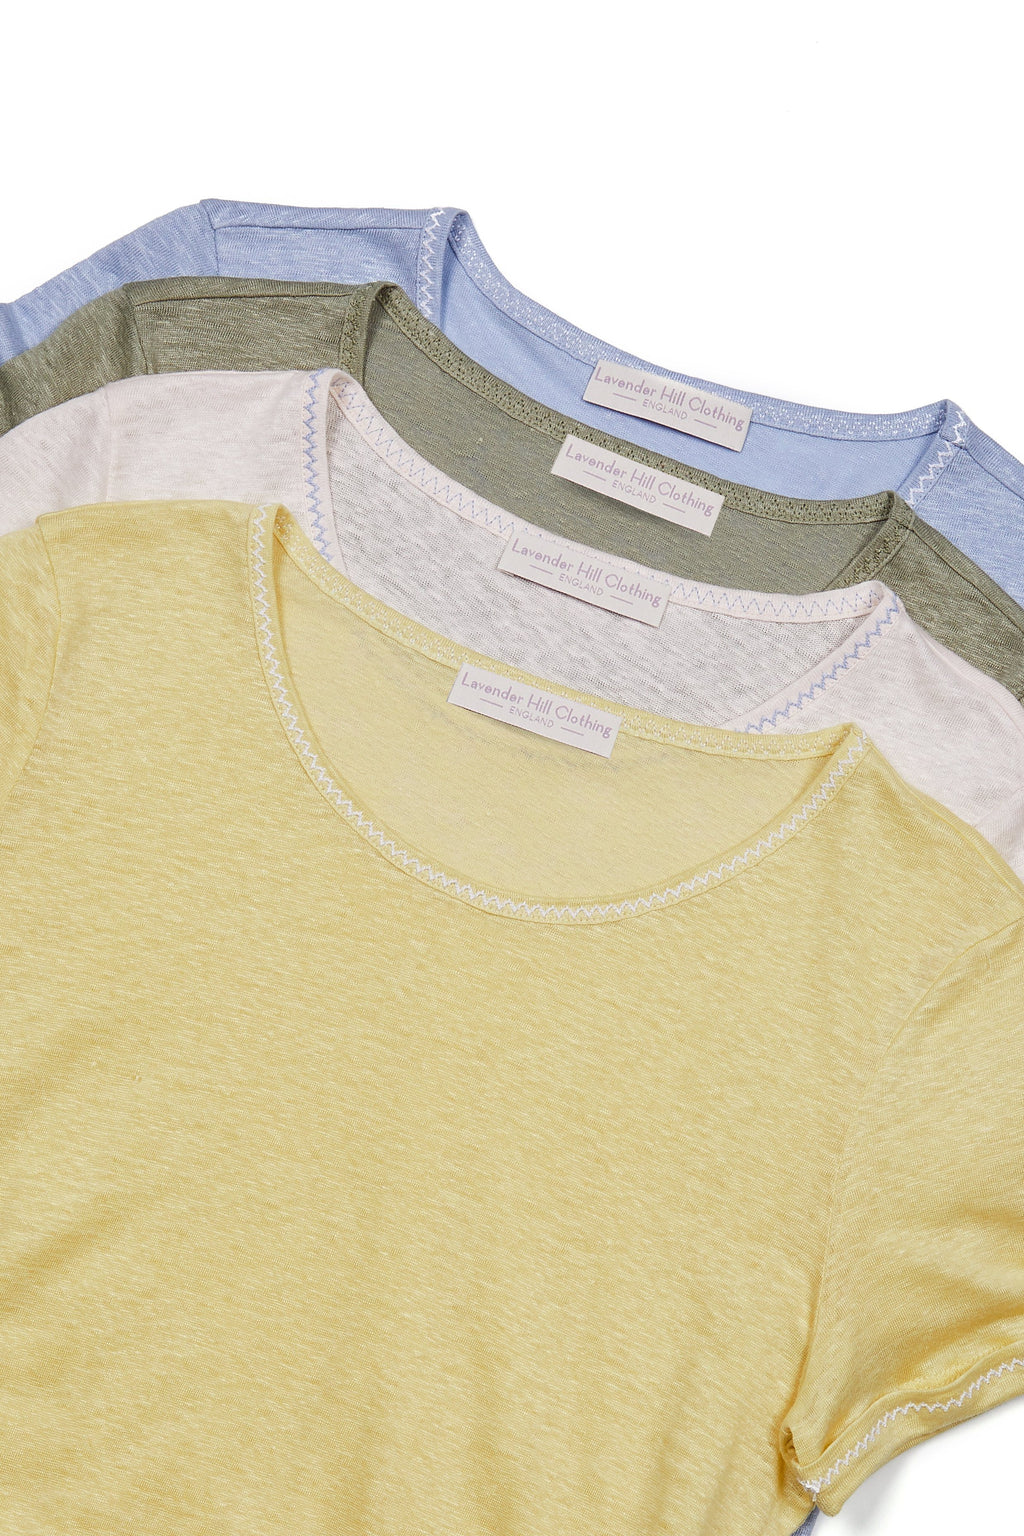 Linen T-shirt 3/4 Sleeve T-shirt Lavender Hill Clothing